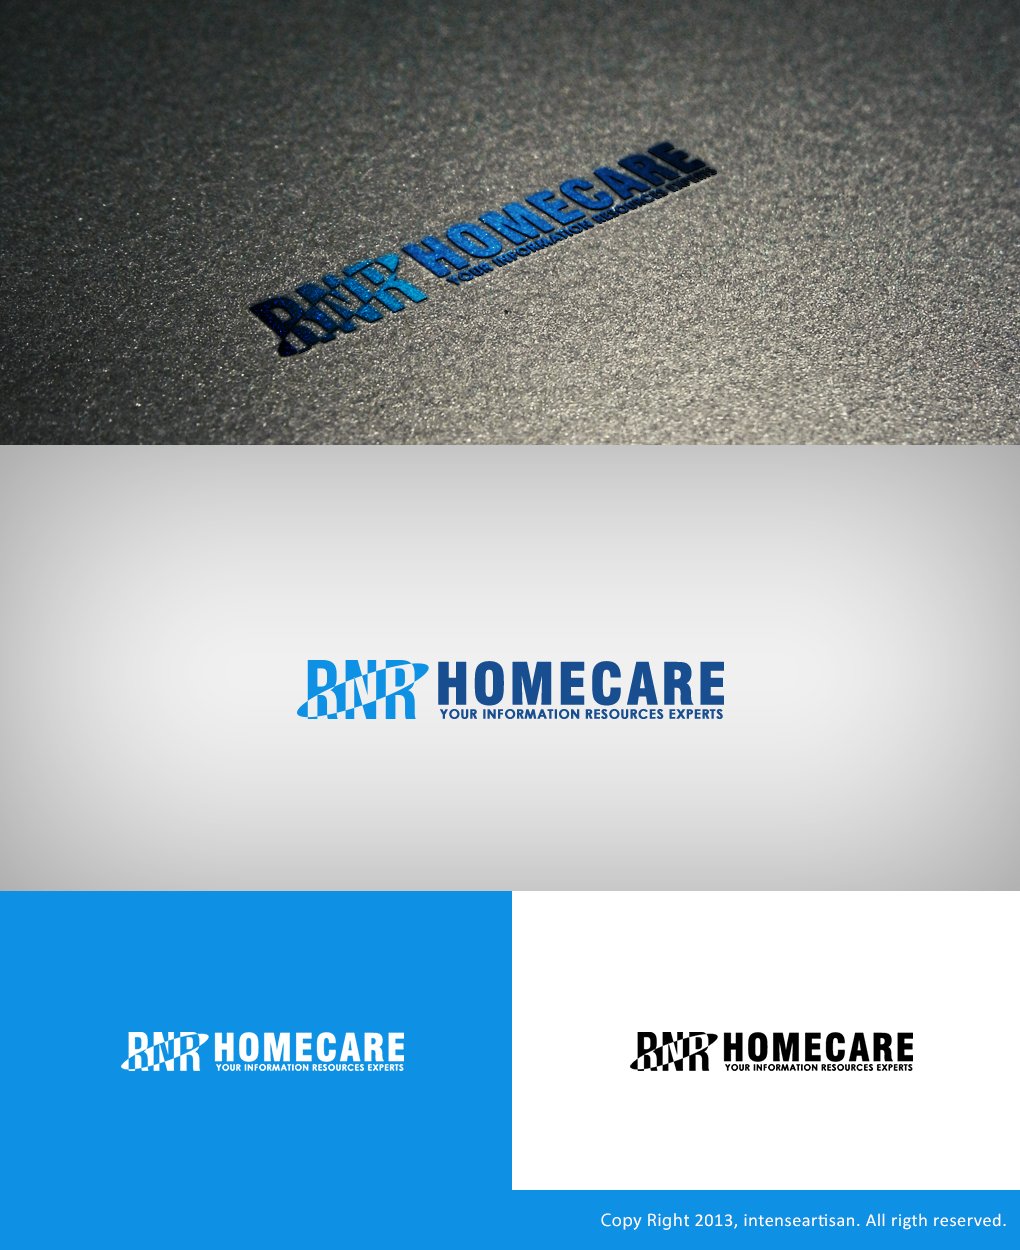 Logo Design by Virgilio Pineda III - Entry No. 125 in the Logo Design Contest Imaginative Logo Design for RNR HomeCare.